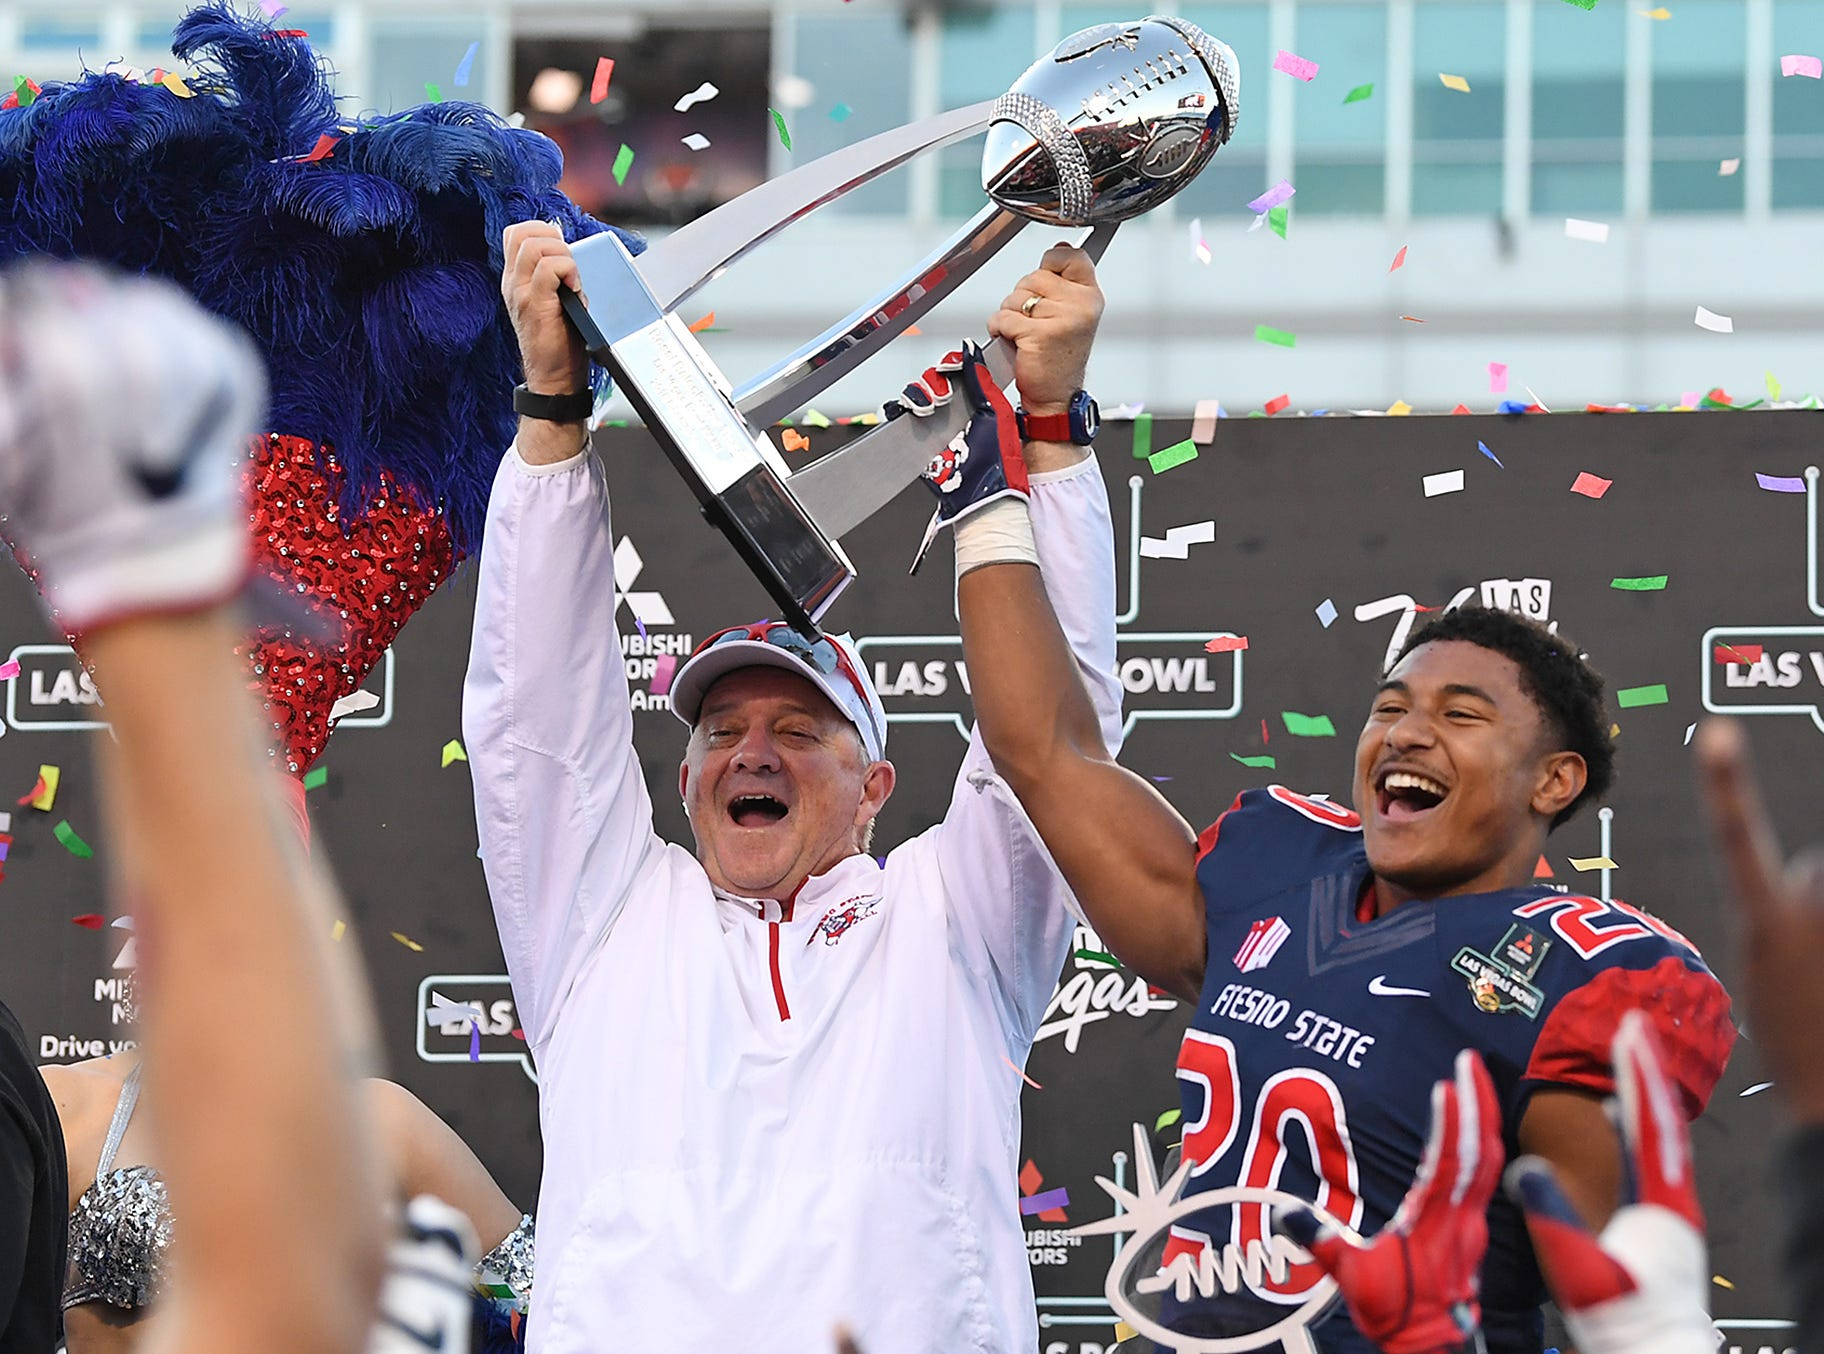 Fresno State Bulldogs head coach Jeff Tedford and running back Ronnie Rivers (20) hoist the Las Vegas Bowl trophy after beating the Arizona State Sun Devils.